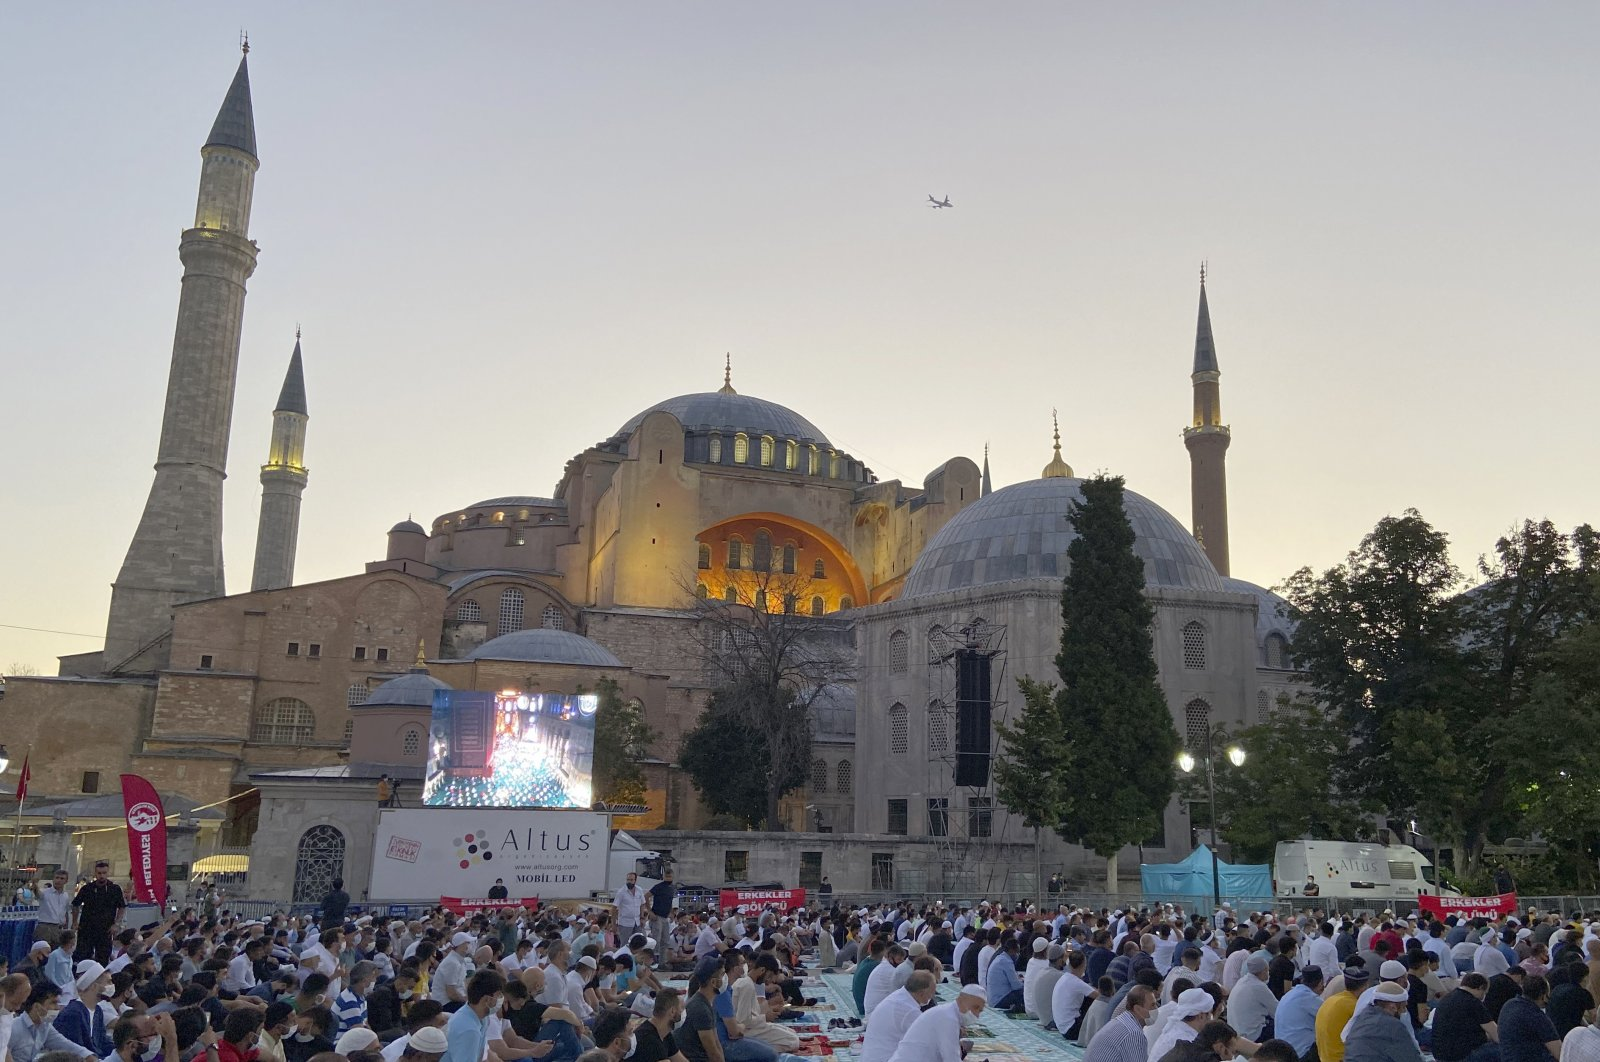 Hundreds of faithful gather early in the morning outside the iconic Hagia Sophia Grand Mosque for Qurban Bayram prayers, in Istanbul, Turkey, July 31, 2020. (AP Photo)